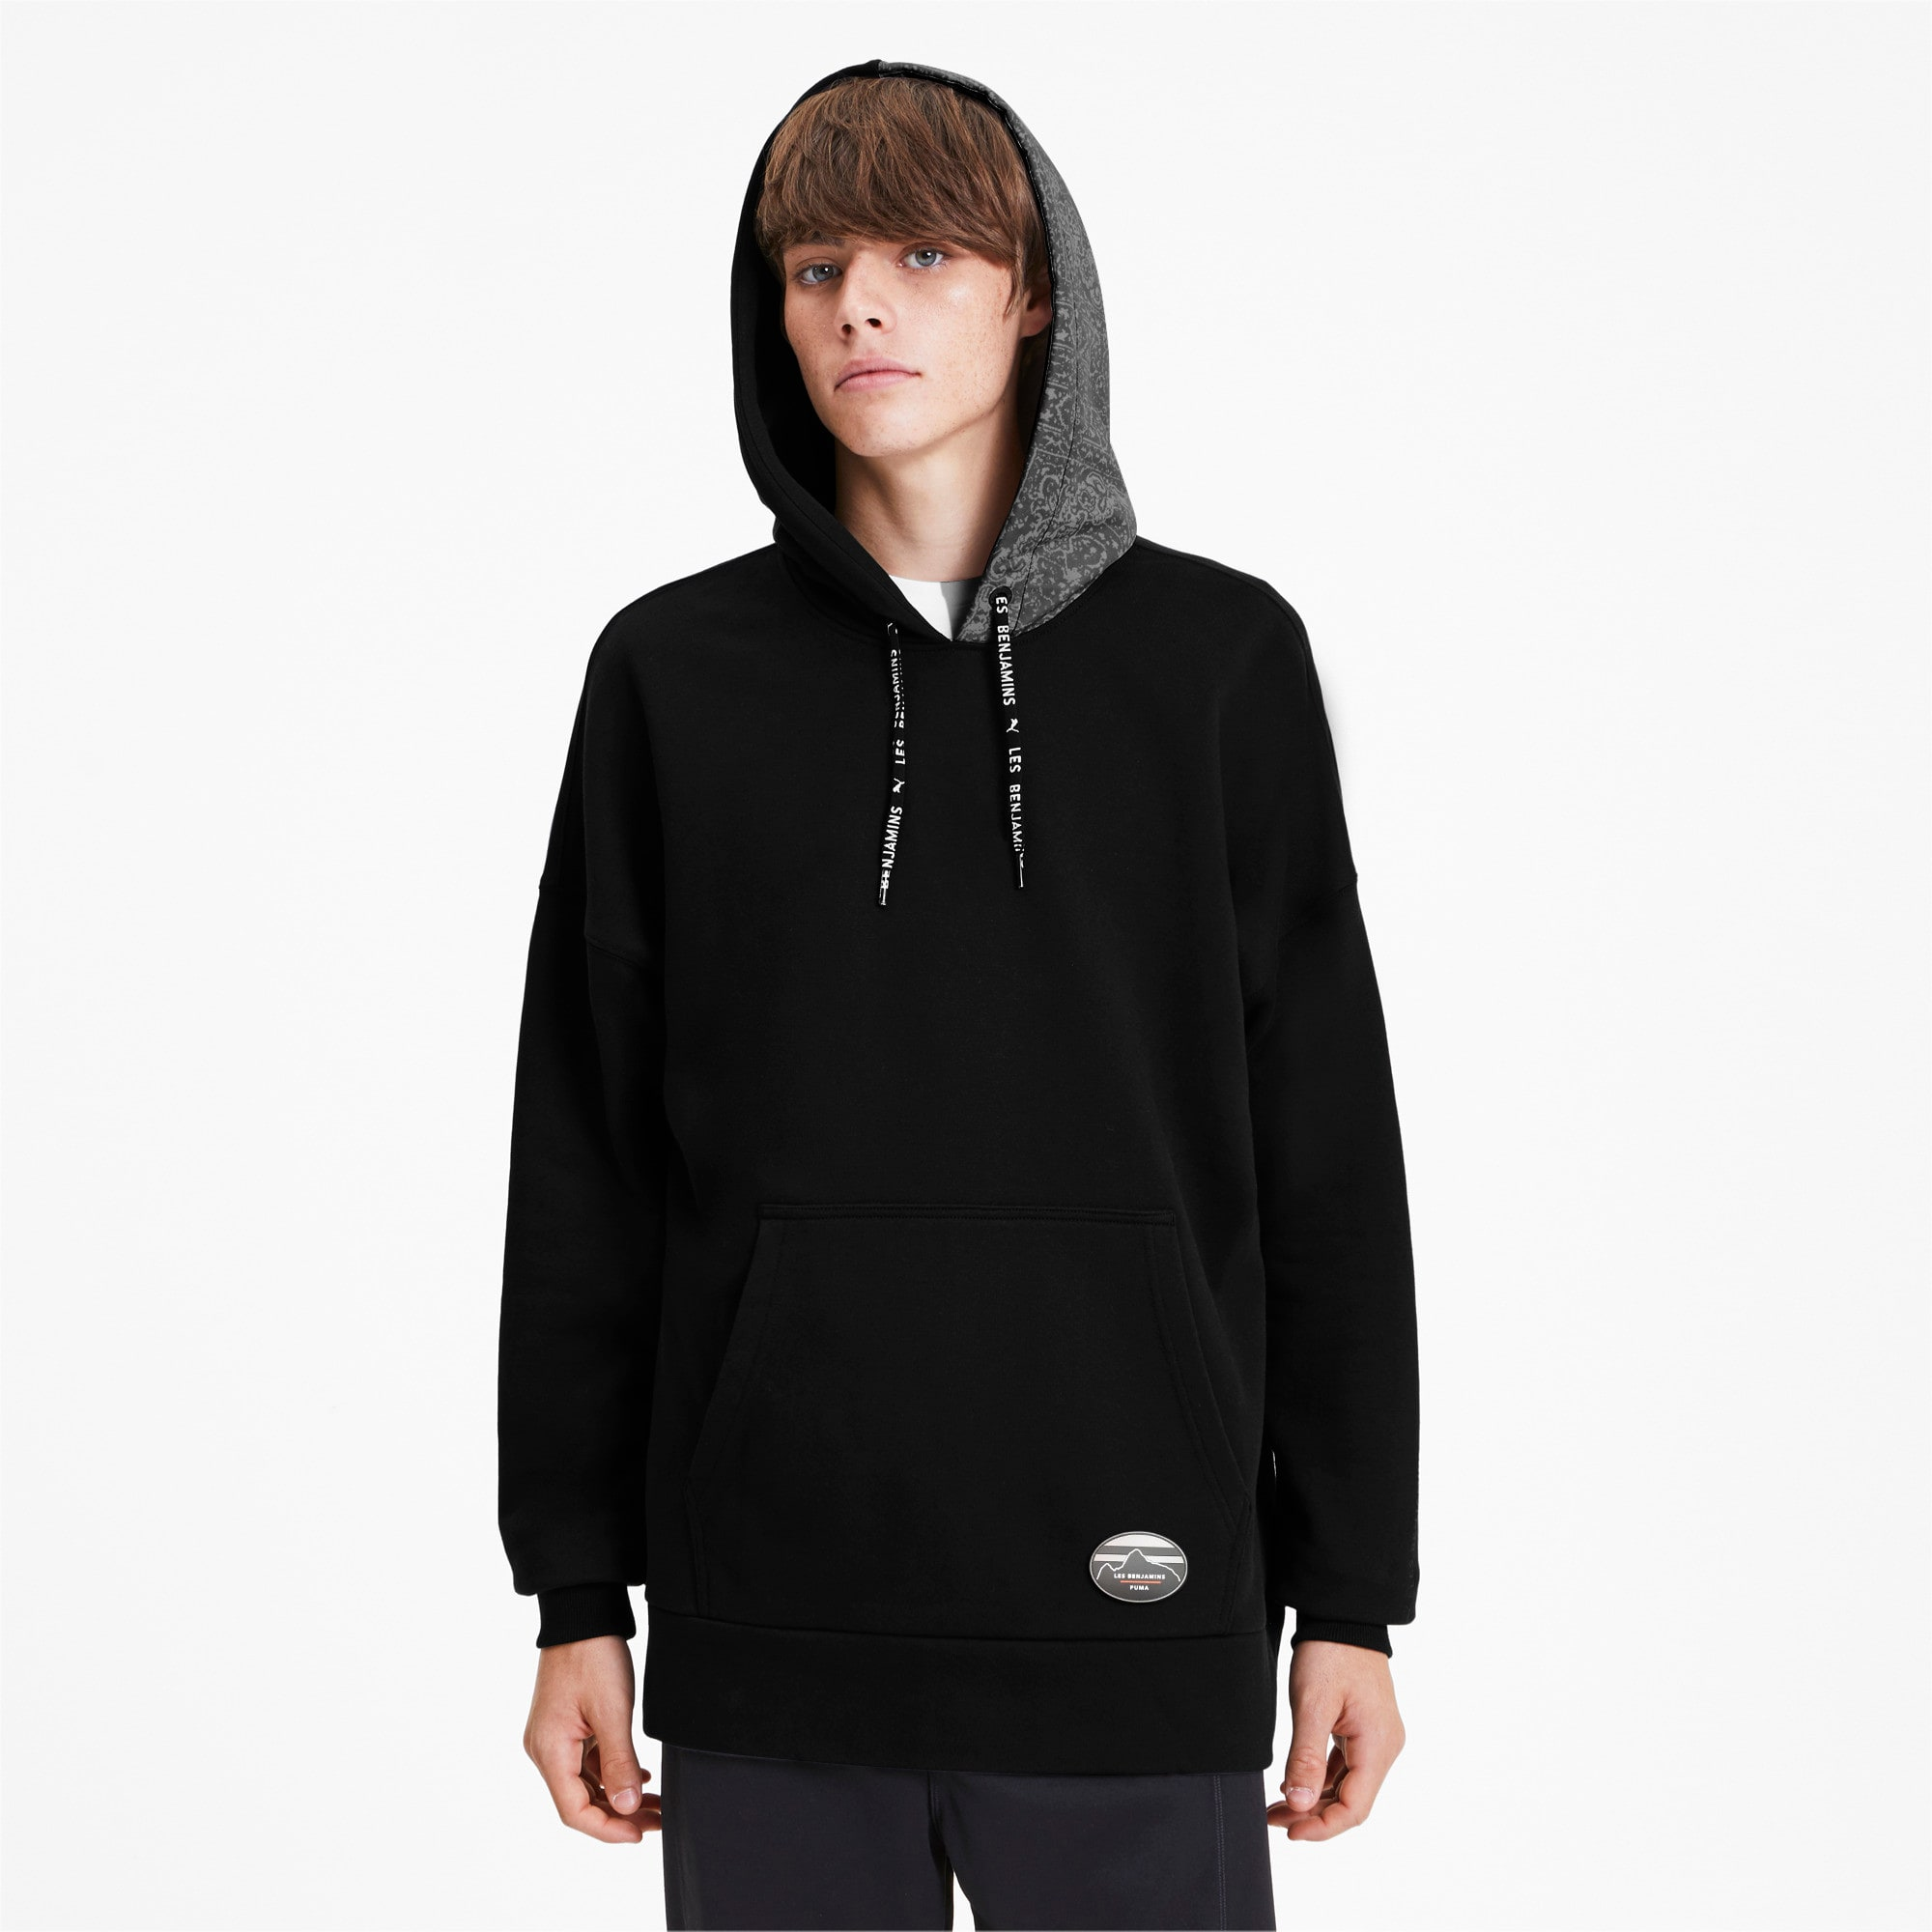 Thumbnail 2 of PUMA x LES BENJAMINS Men's Hoodie, Puma Black, medium